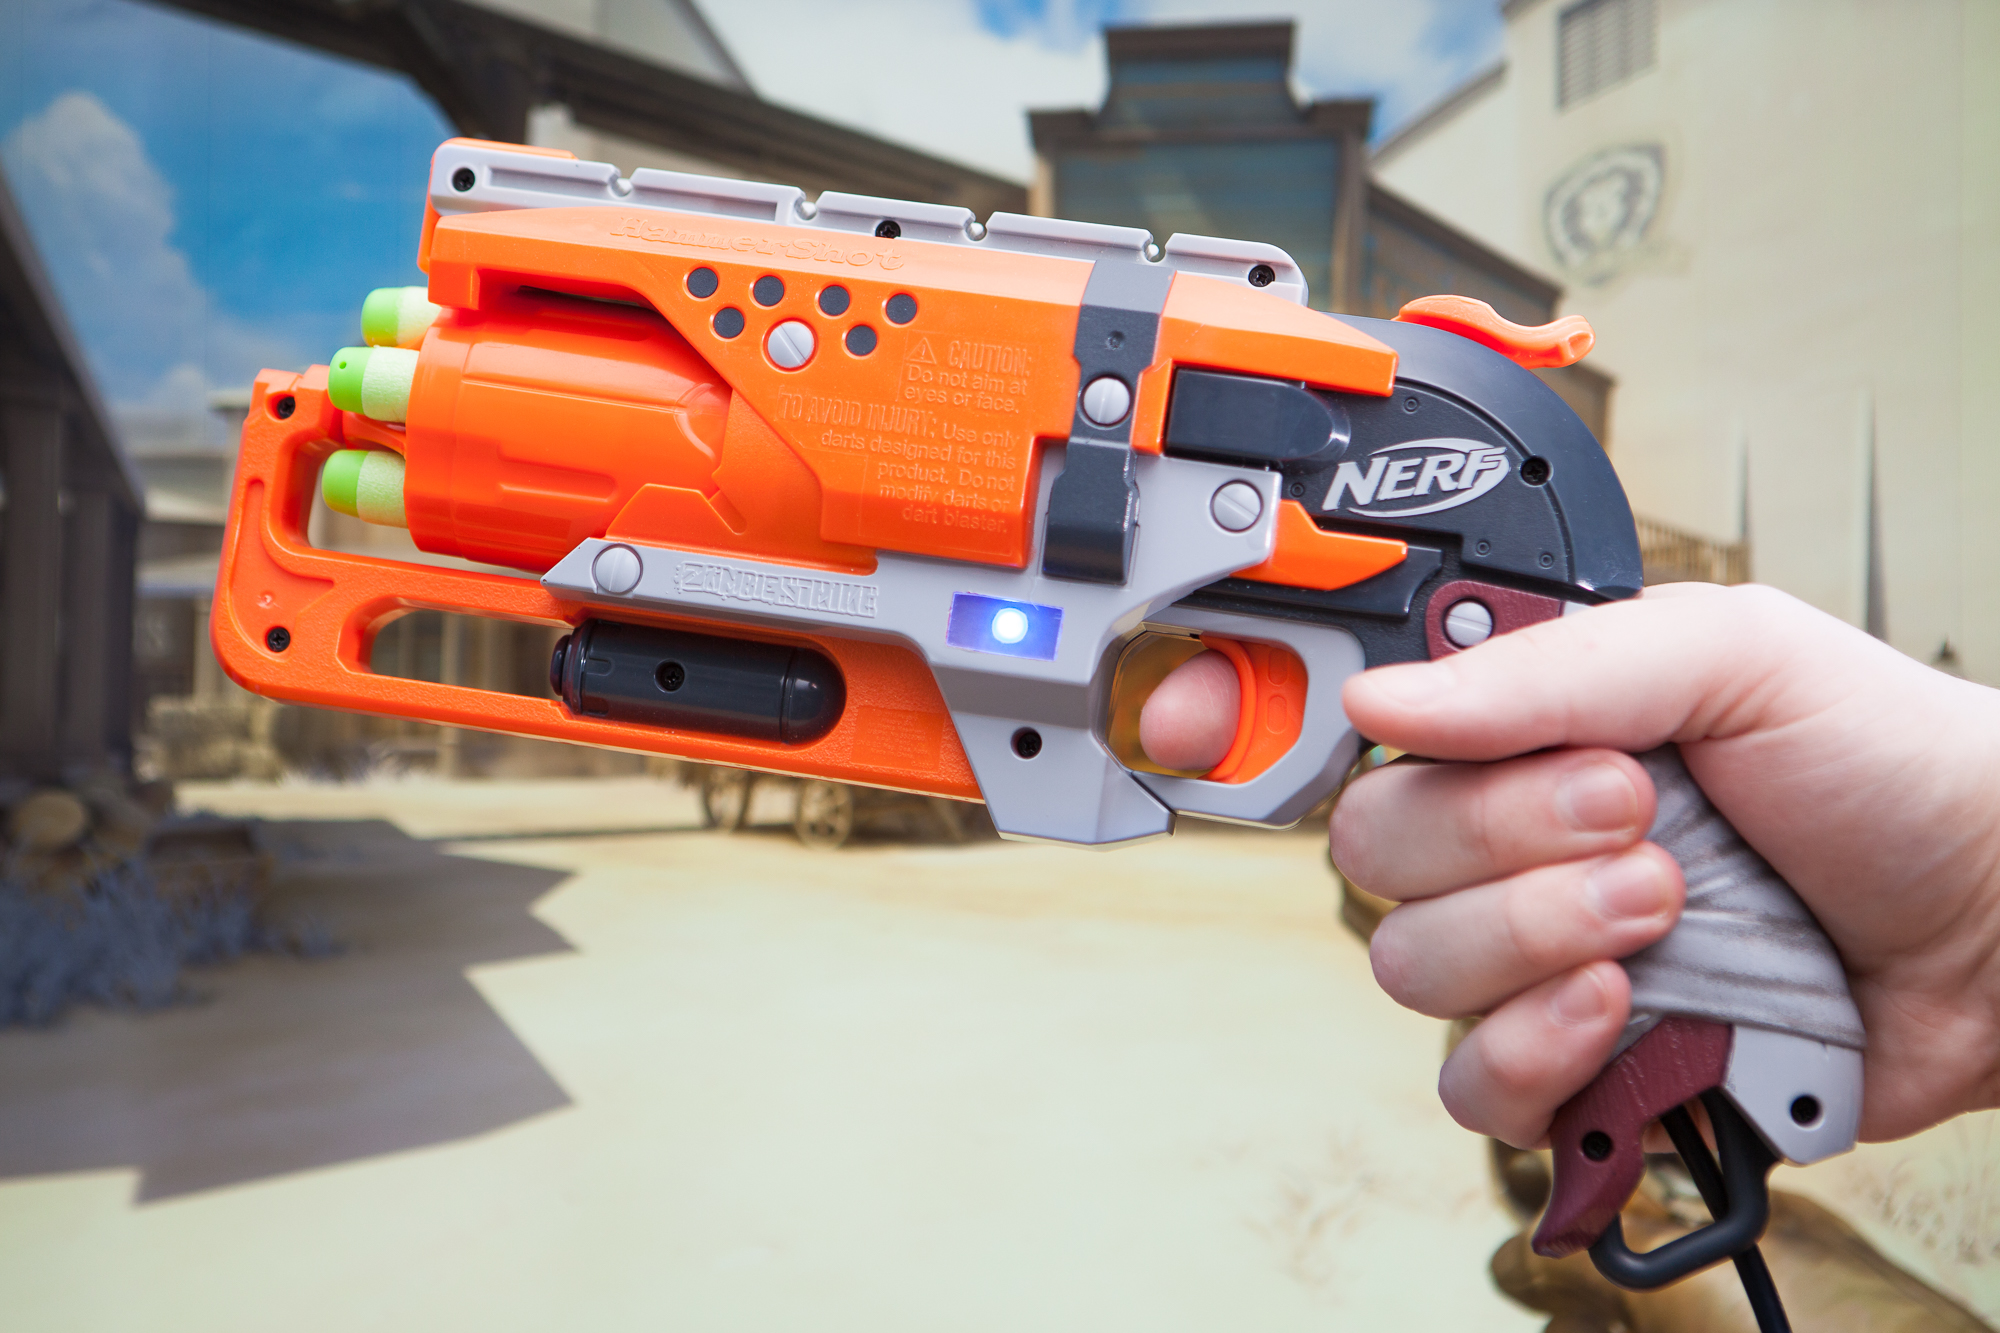 McCree Hammershot: Conclusion